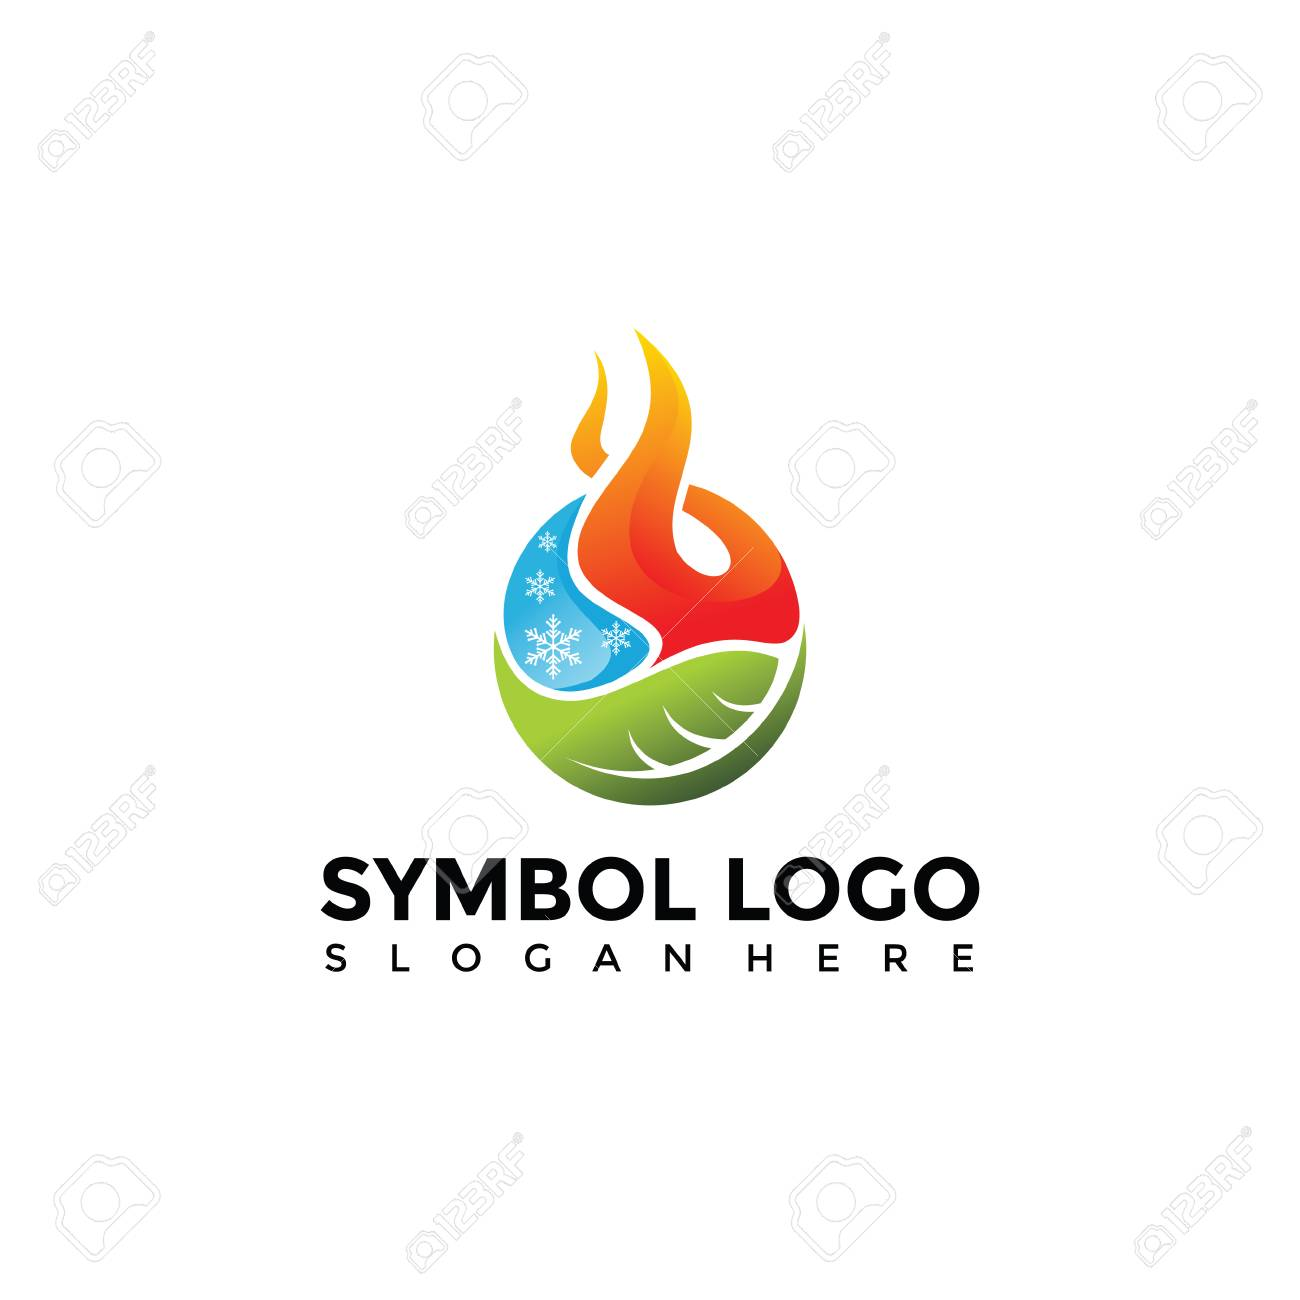 Element Symbol Of Fire, Water, Nature Logo Template. Vector ...